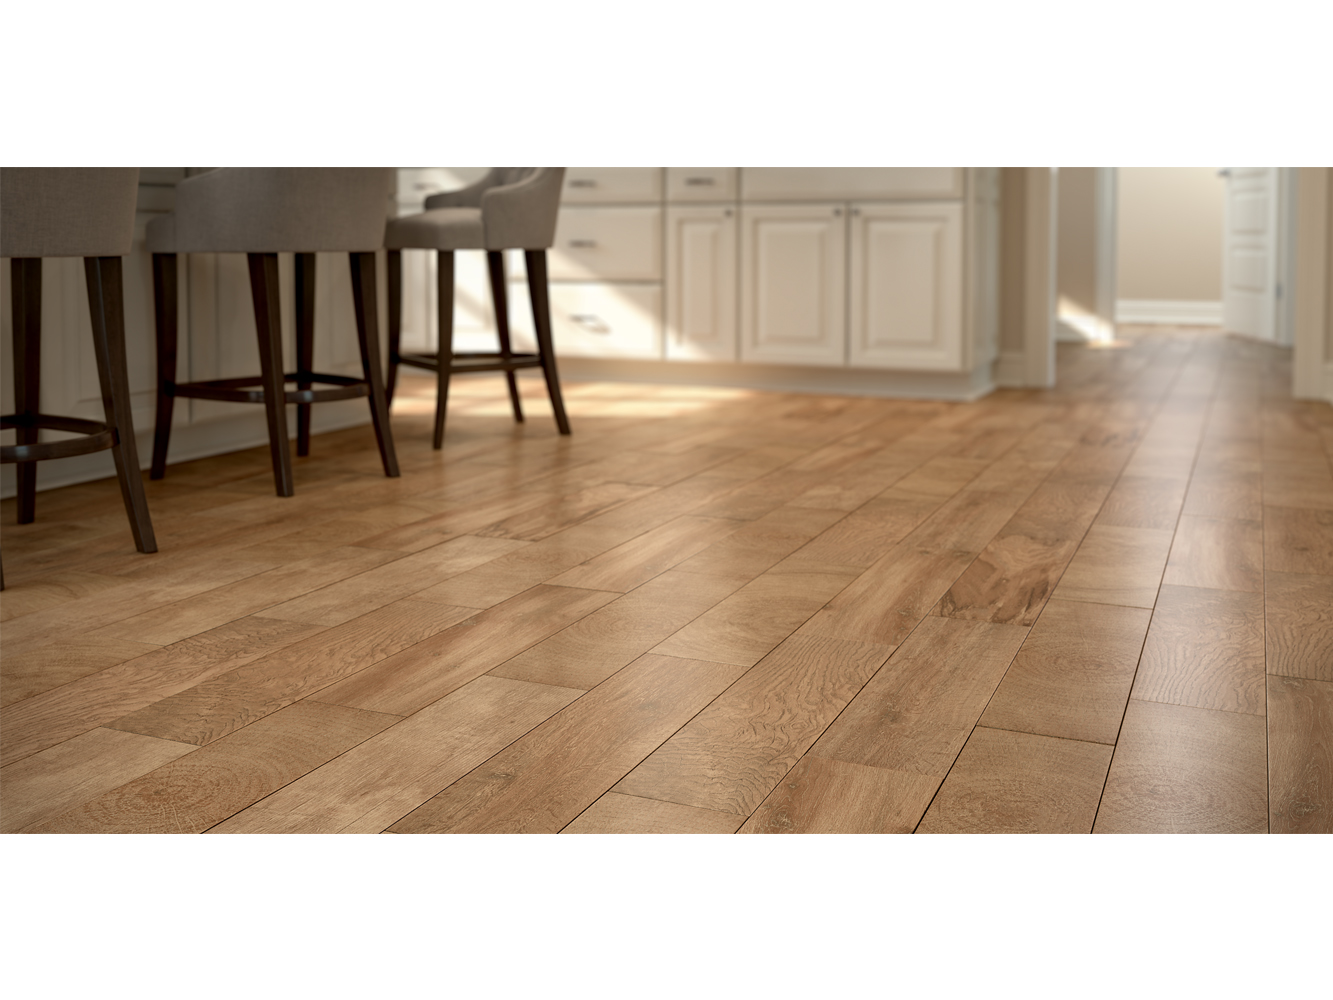 pix-us-cg-wood-floor